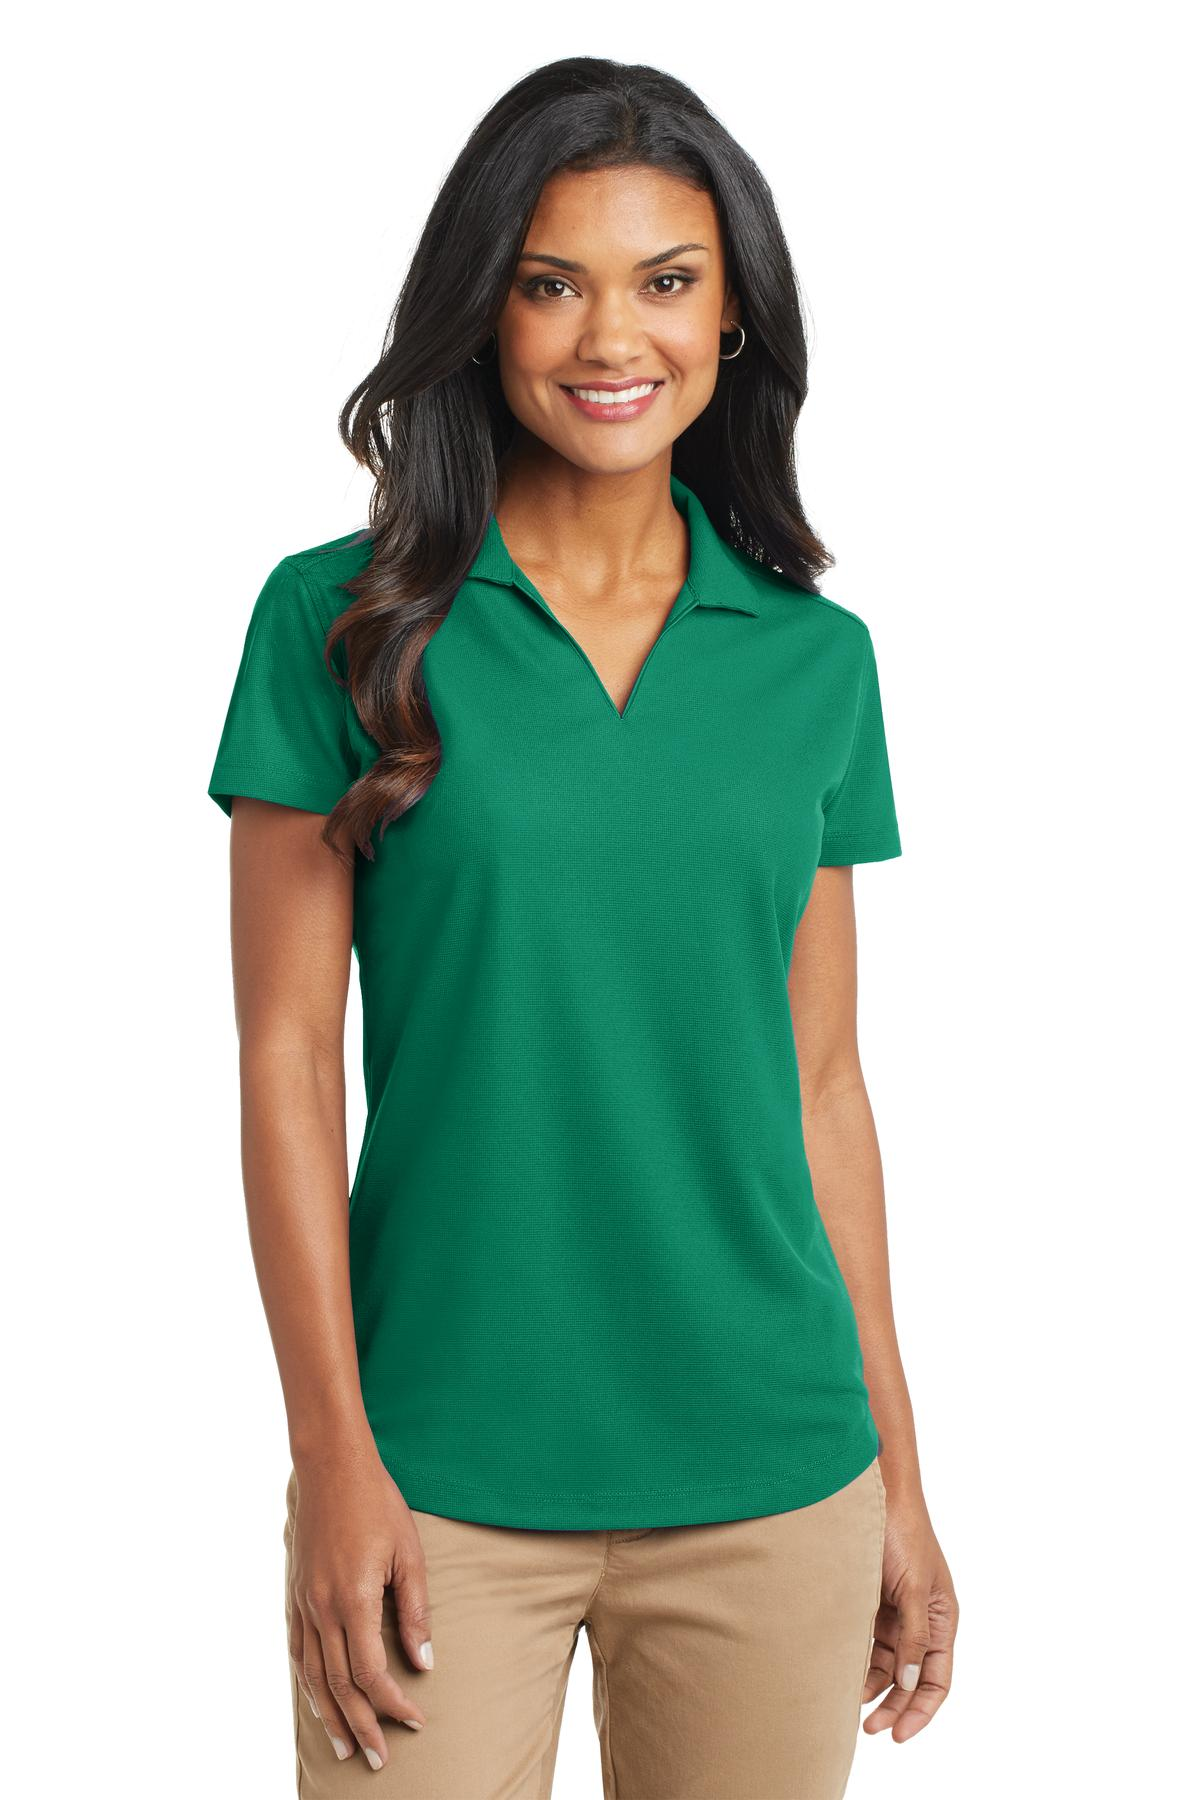 click to view Jewel Green